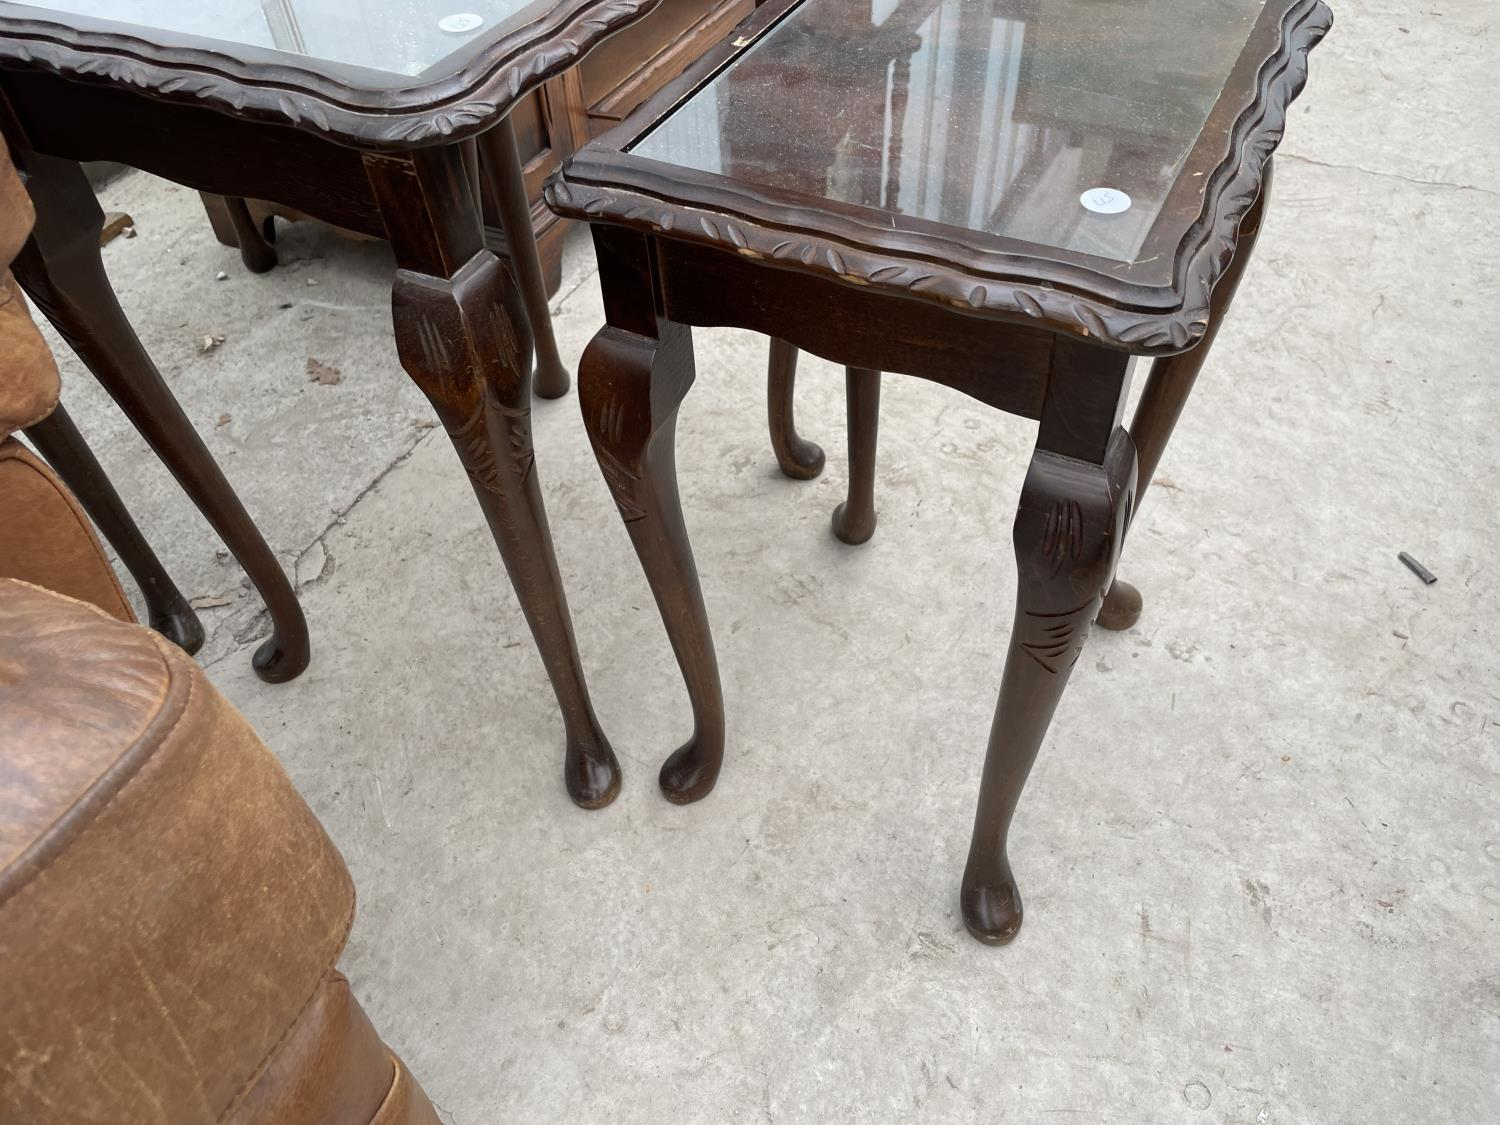 A REPRODUCTION NEST OF THREE TABLES ON CABRIOLE LEGS - Image 3 of 3